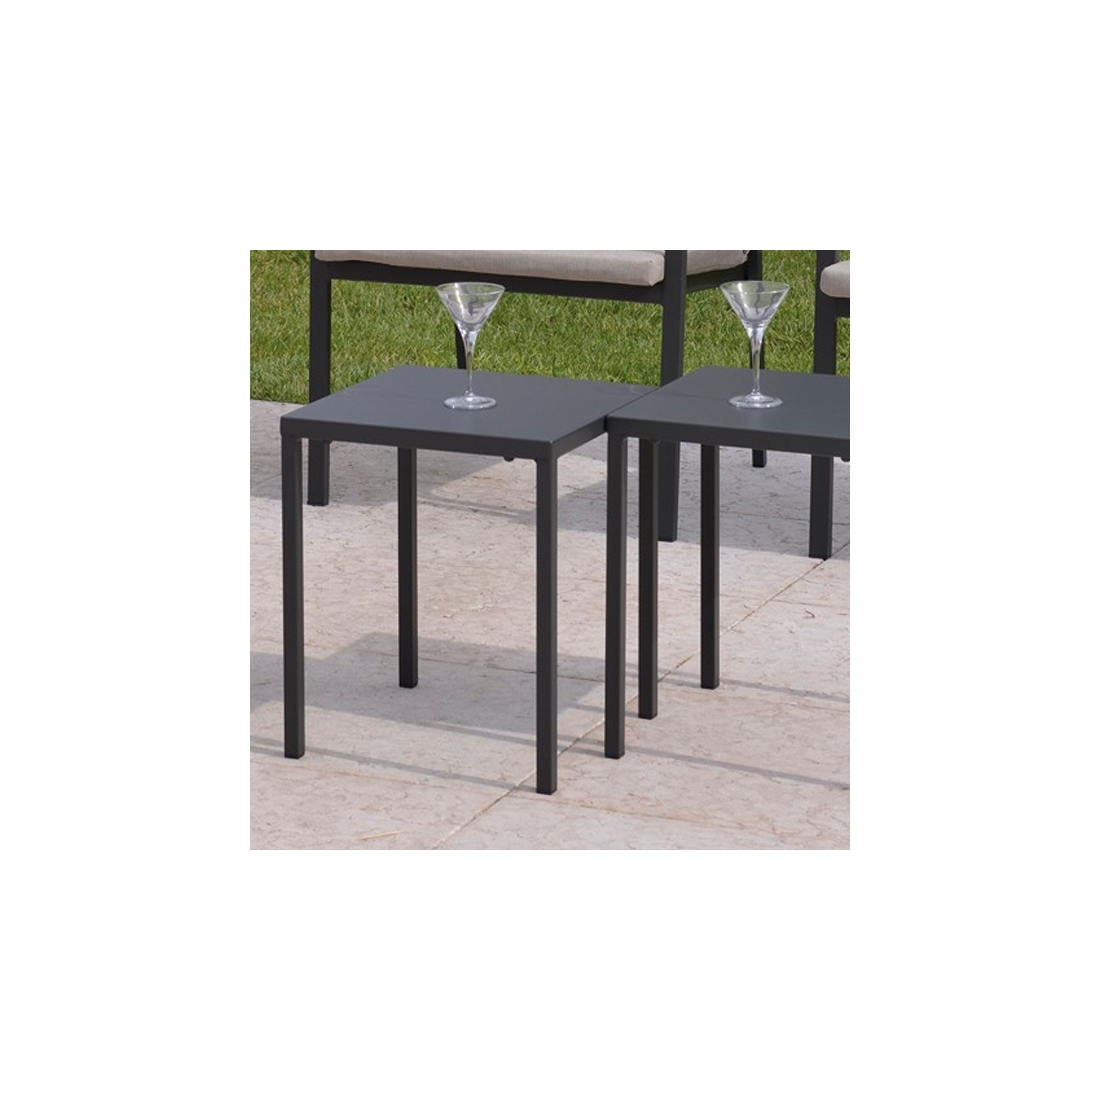 Petite table basse de jardin rd italia zendart design - Table de jardin design italien ...